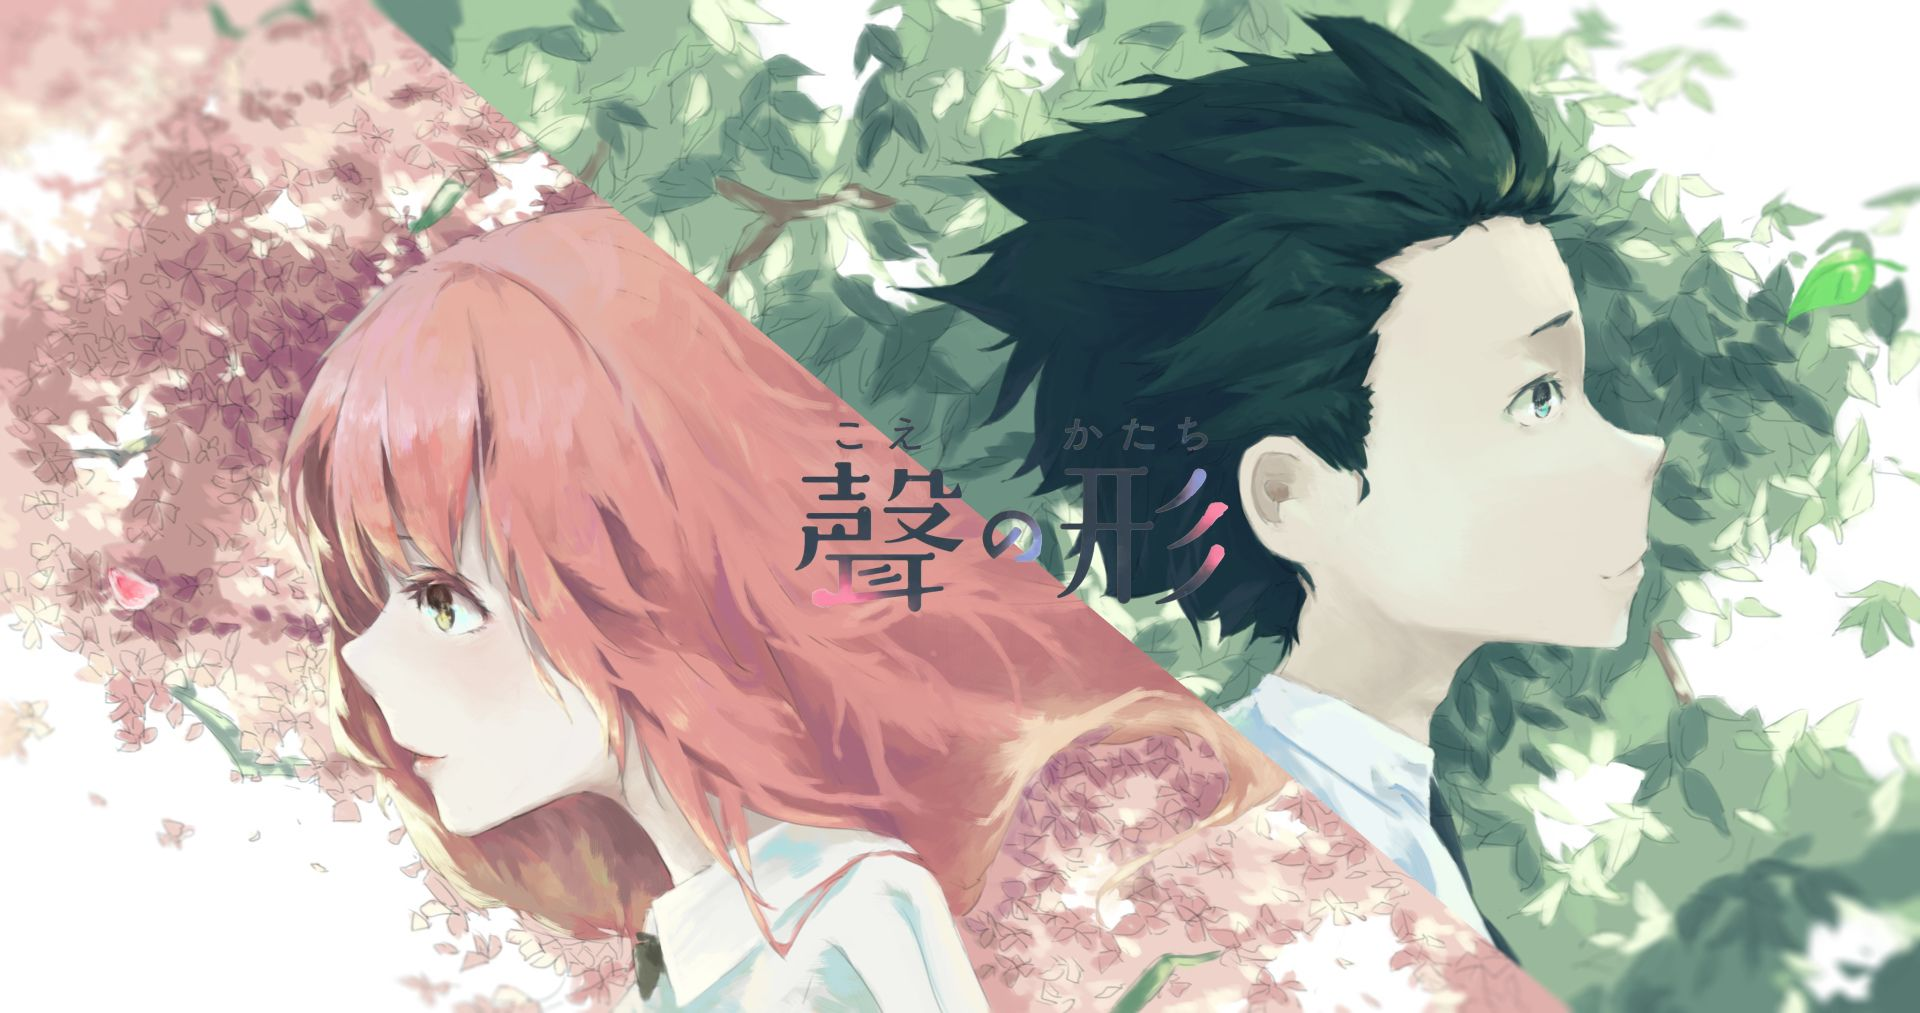 Anime Koe No Katachi Wallpaper Koe No Katachi Pinterest The